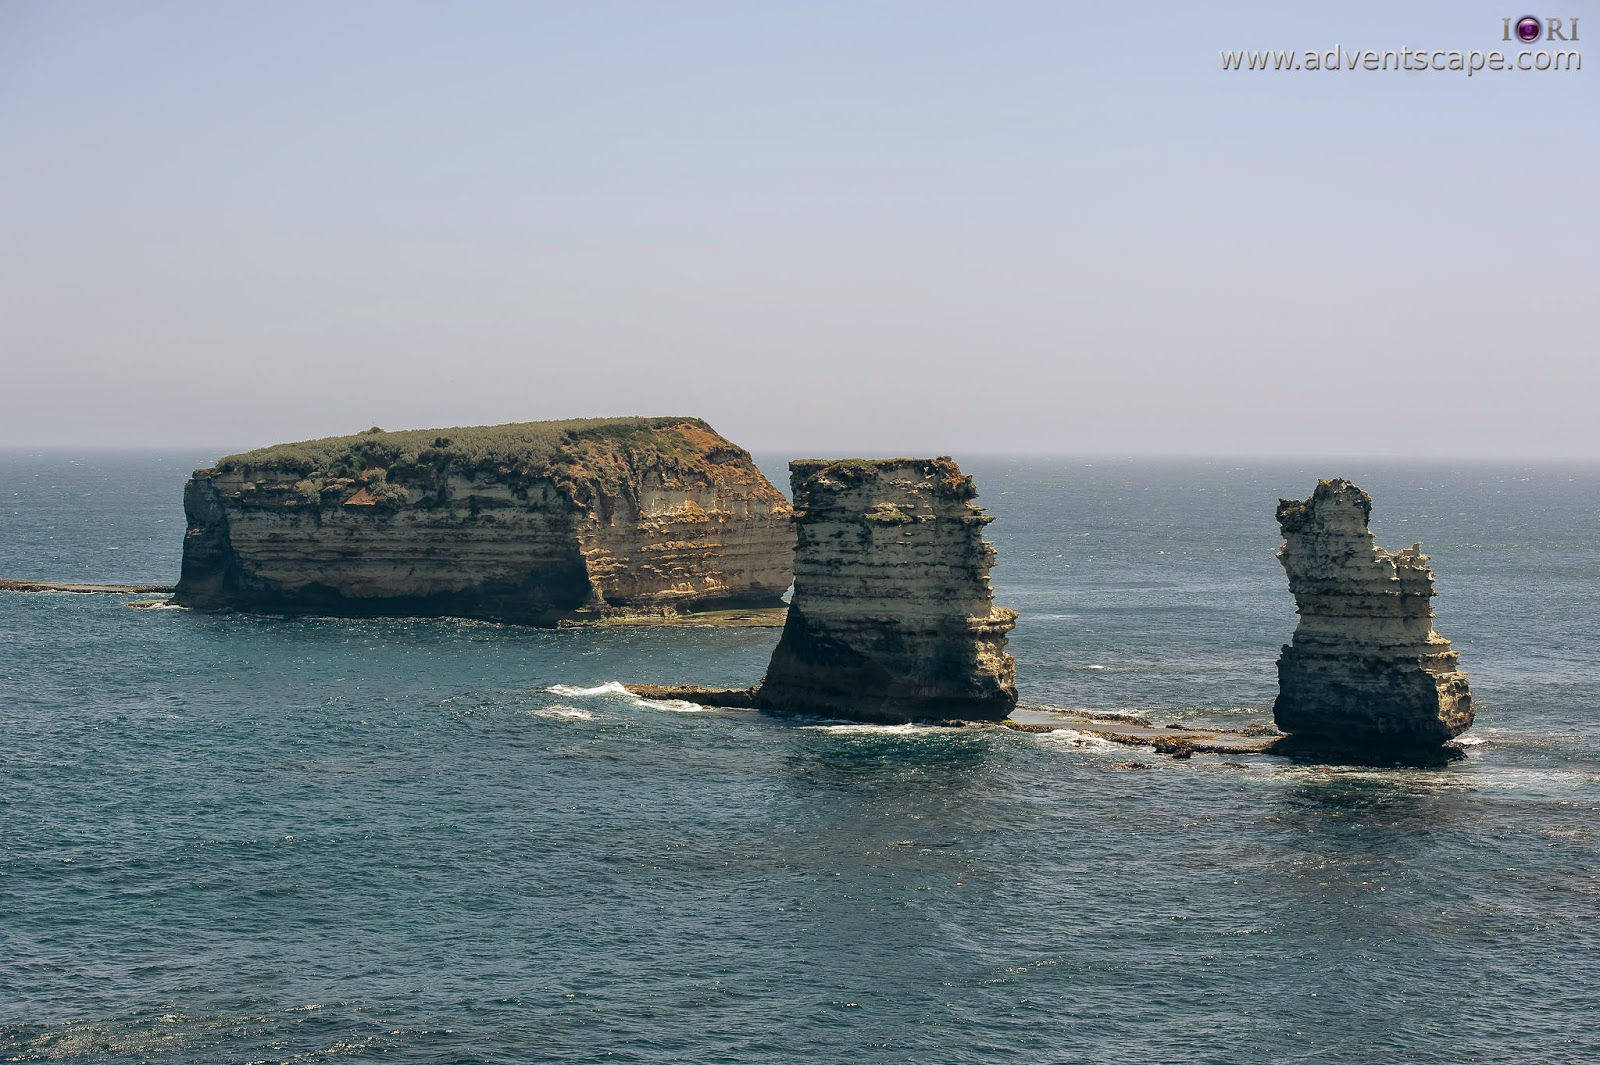 australia, Australian Landscape Photographer, Bay of Islands, Great Ocean Road, Peterborough, Philip Avellana, victoria, Warrnambool, rock formation, coastline, Apollo Bay, sediments